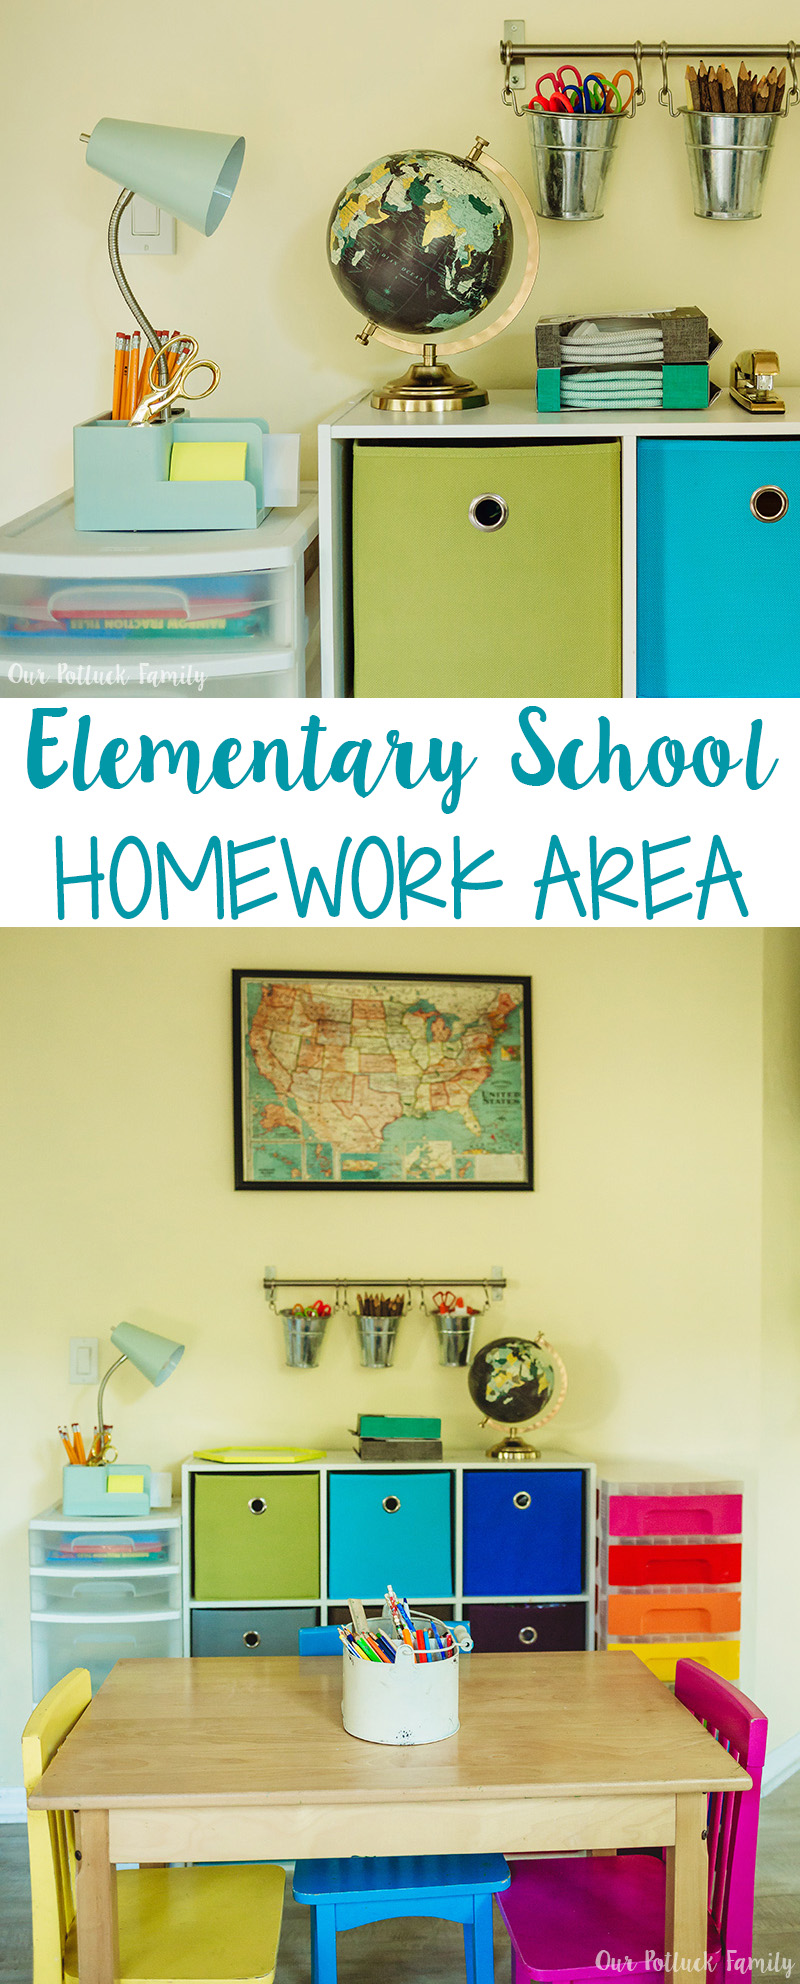 Elementary School Homework Area